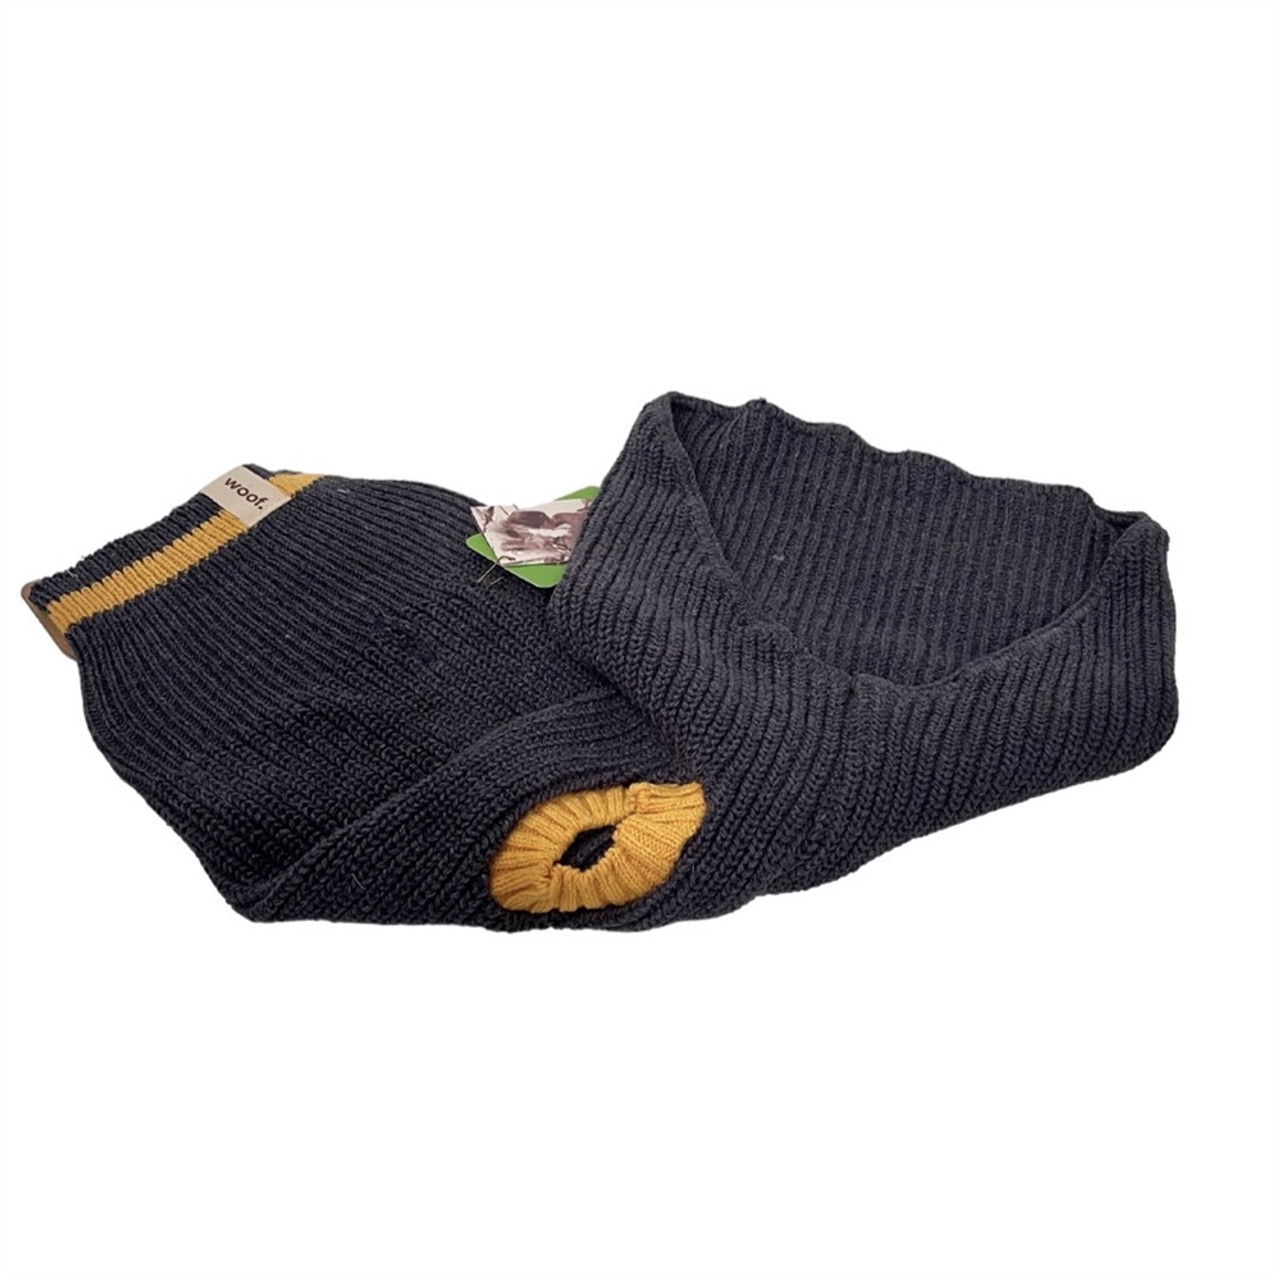 Reclaimed Cotton Dog Sweater - For Dogs 21